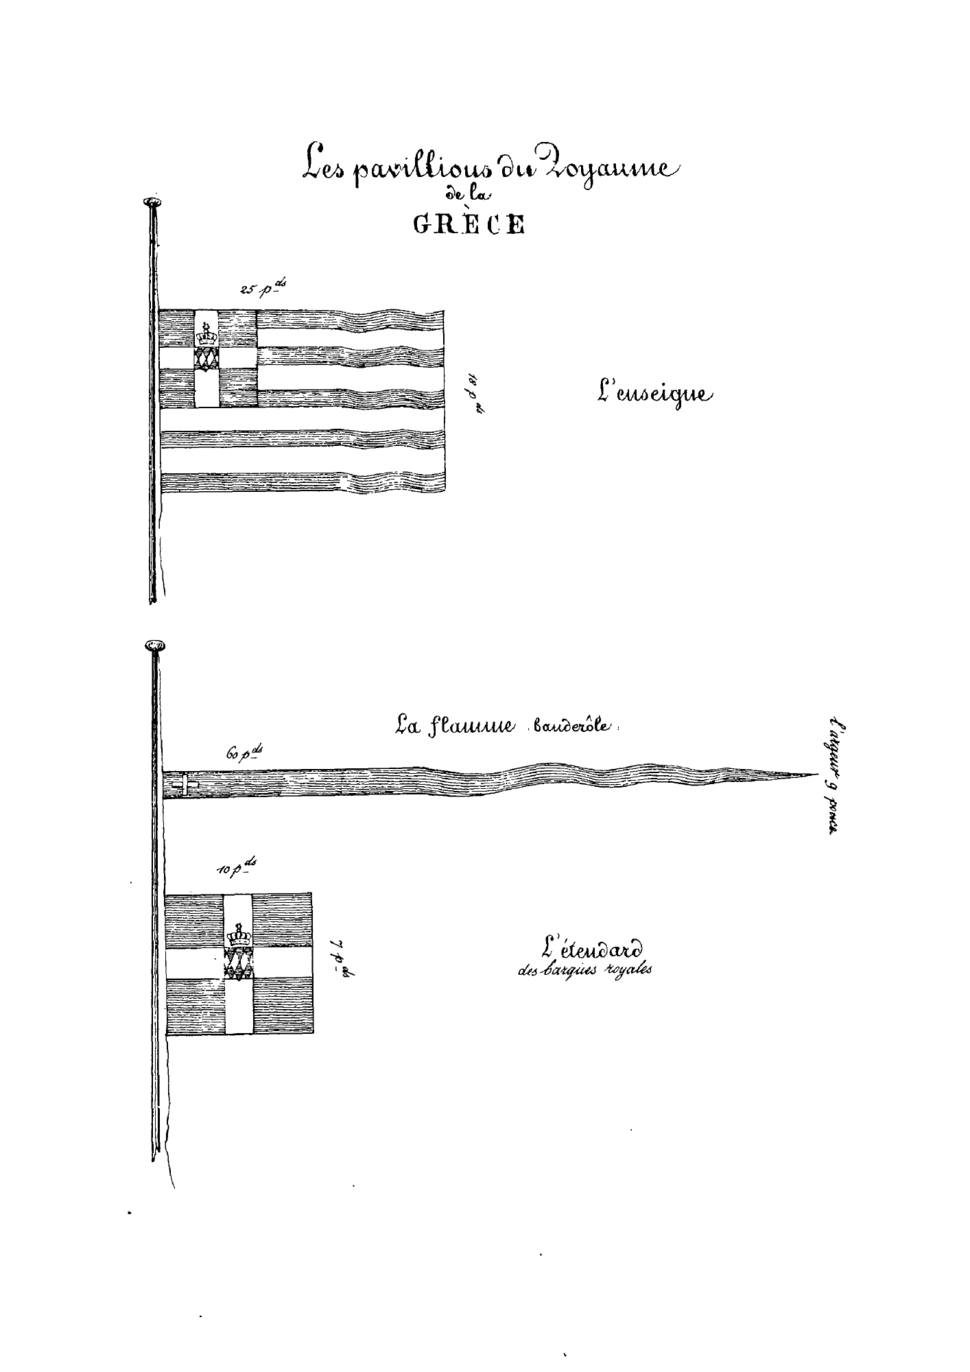 Specifications for the Flag of Greece (1833)